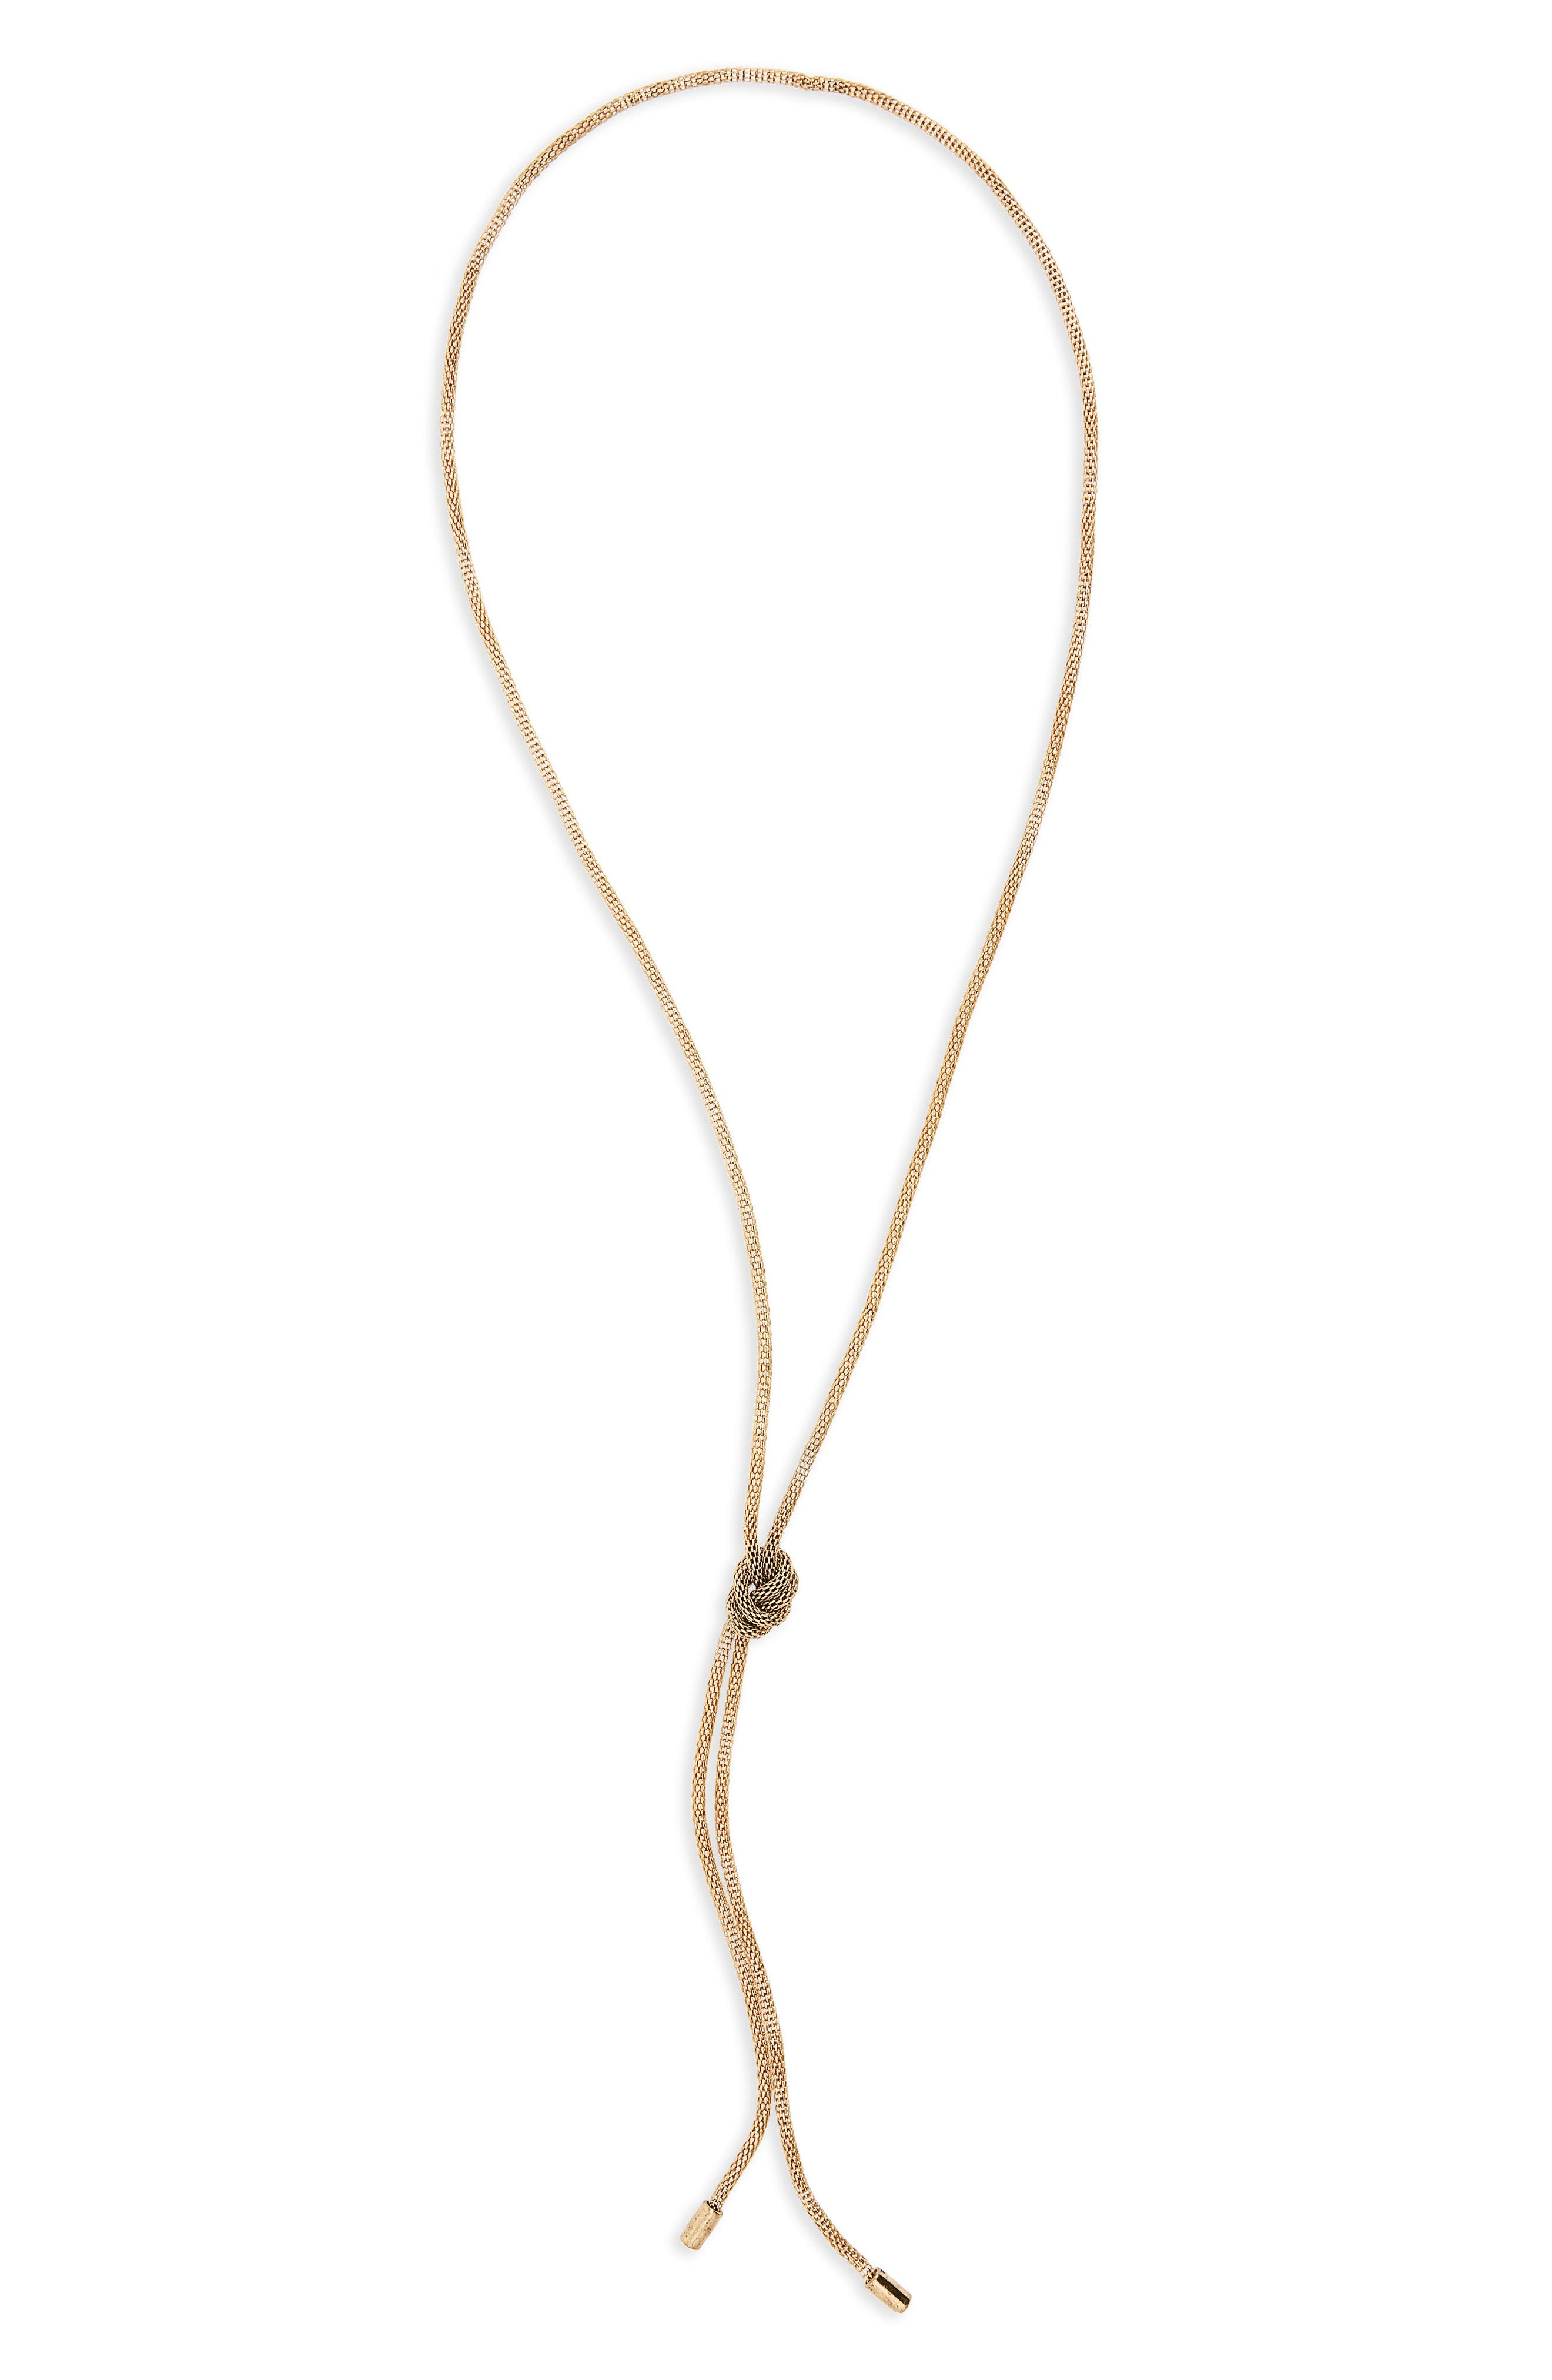 Knotted Rope Chain Necklace,                             Main thumbnail 1, color,                             710